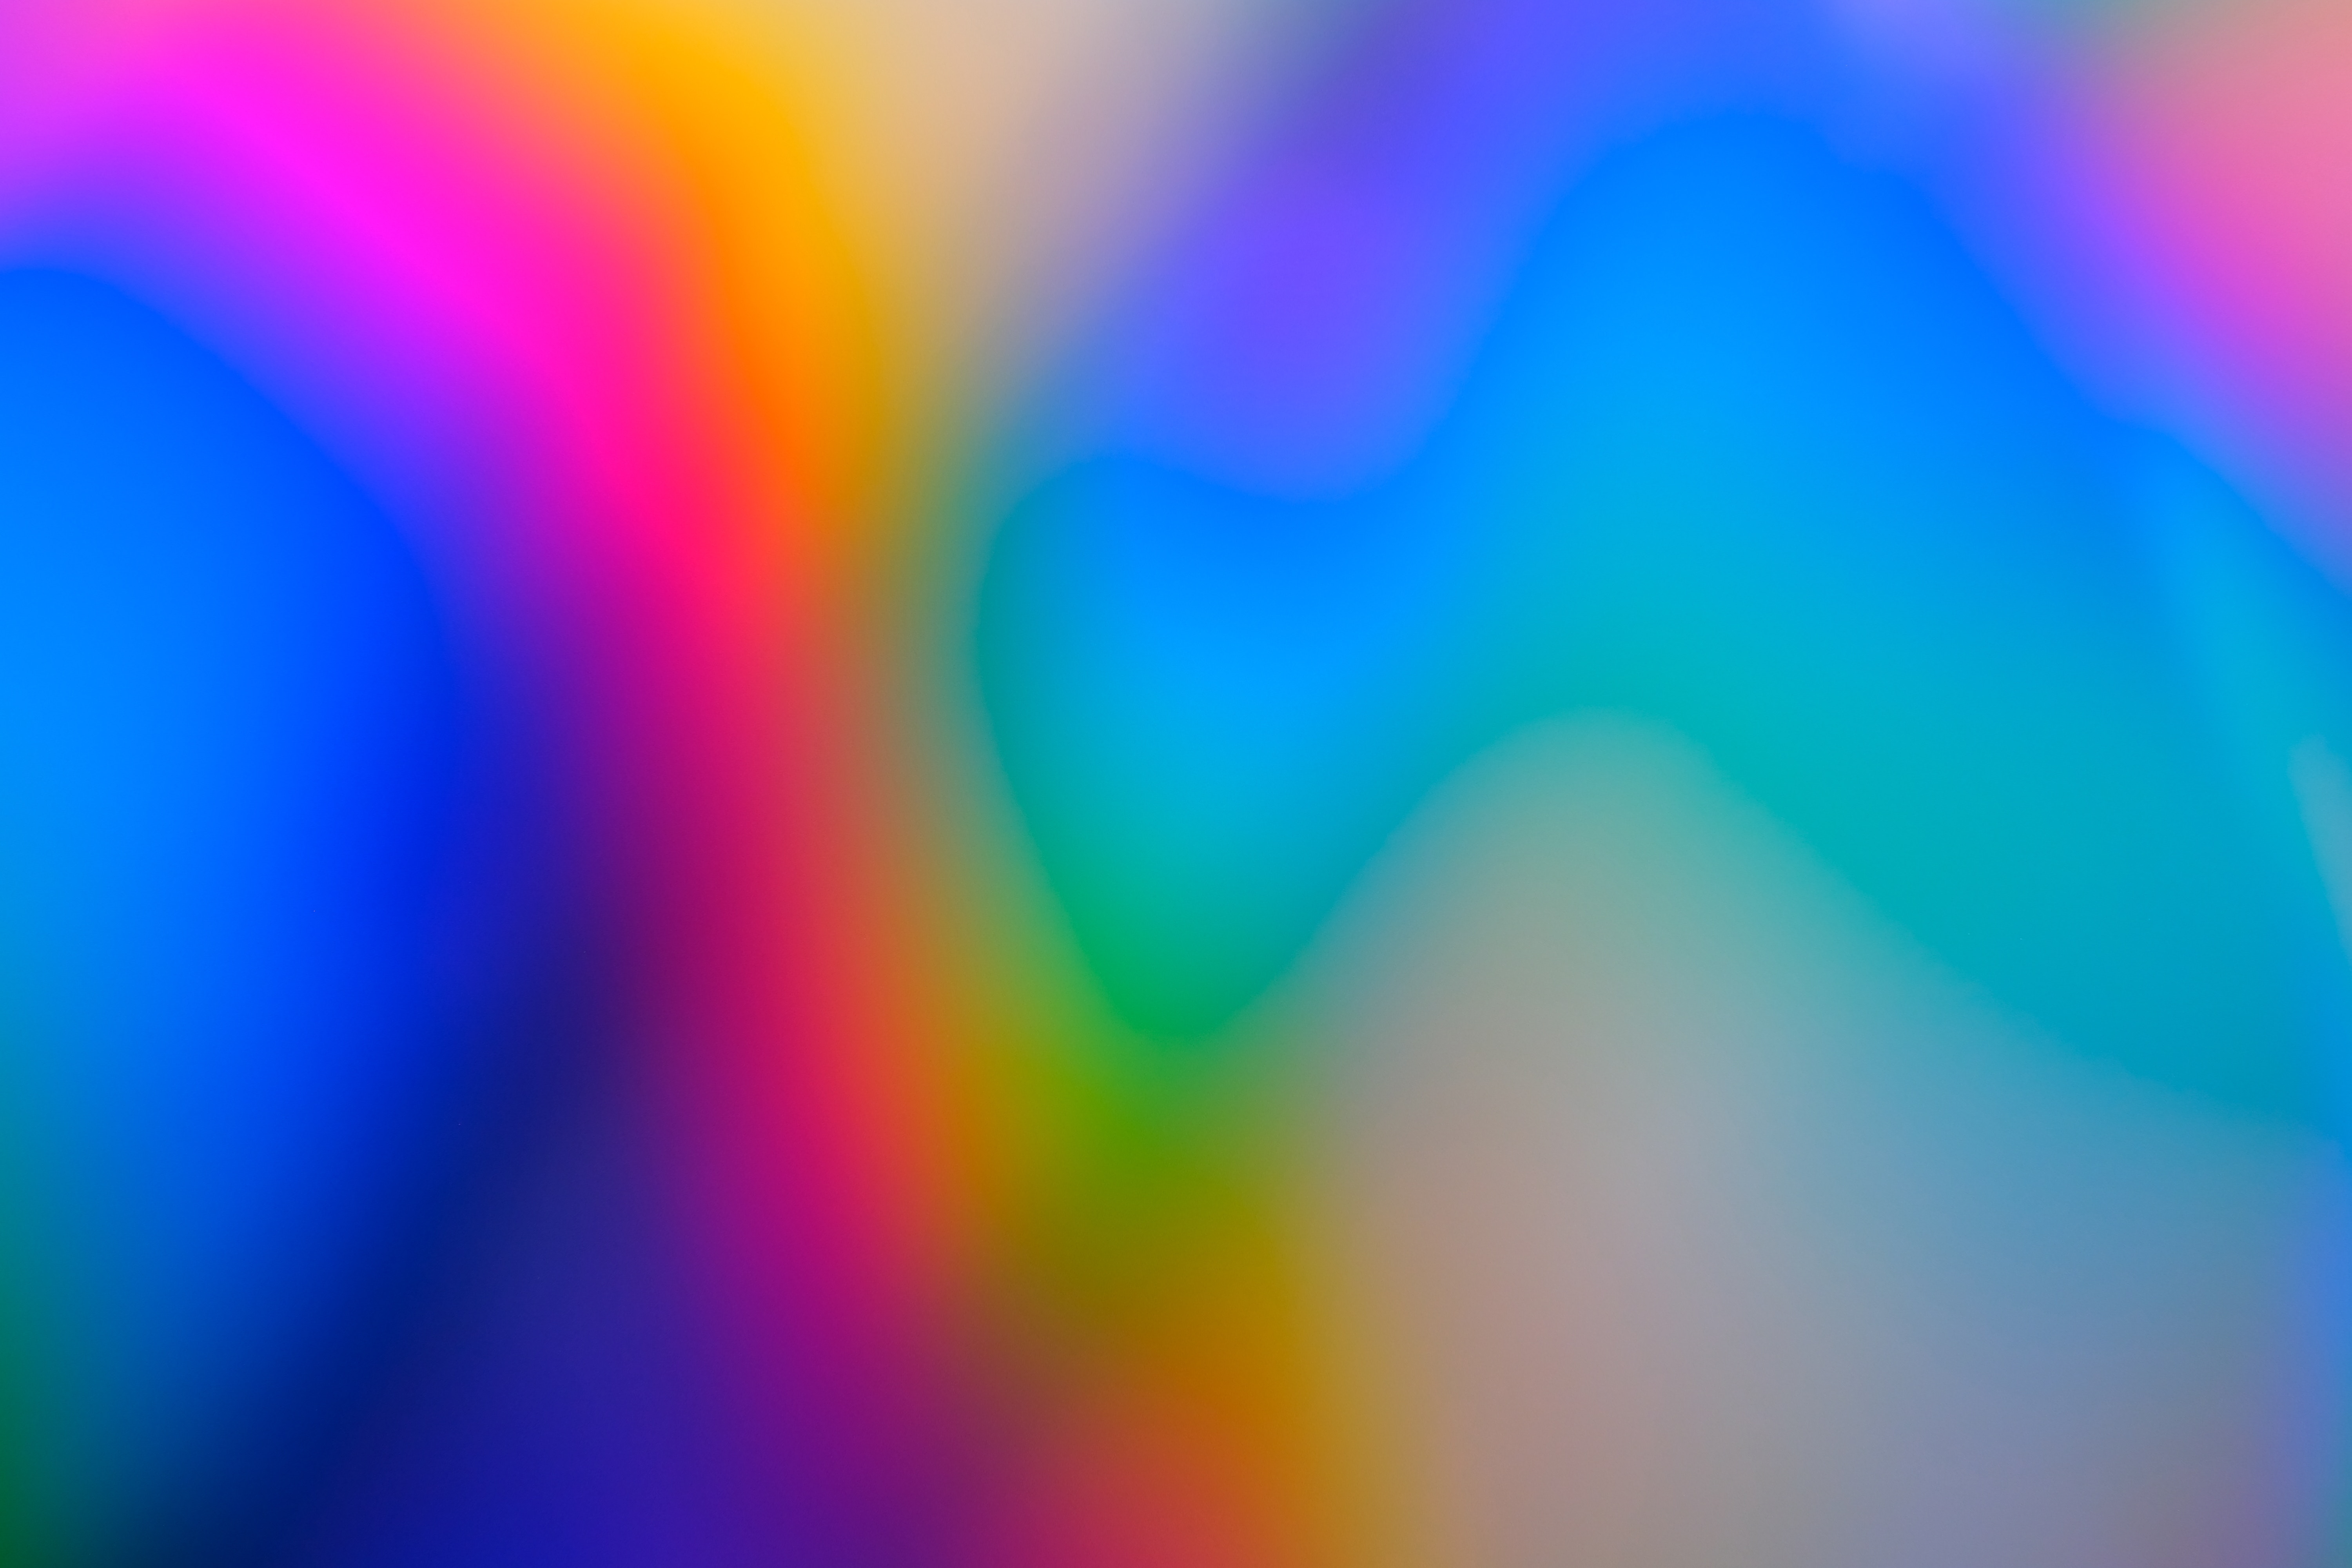 Popular Gradient images for mobile phone